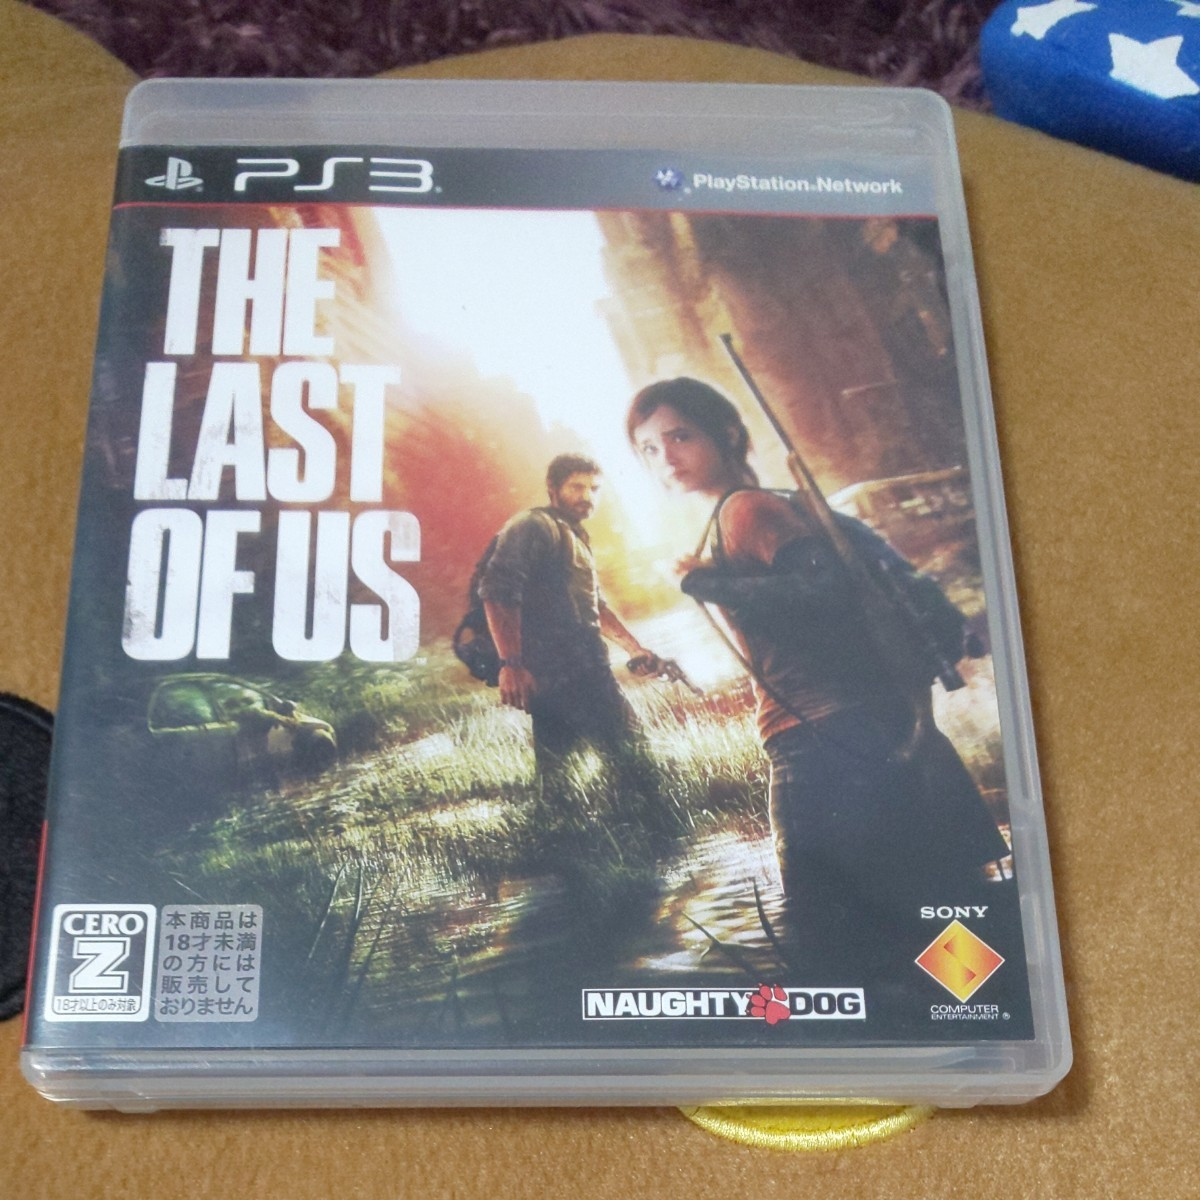 【PS3】 The Last of Us [通常版] PS3 ラストオブアス PS3ソフト THE LAST OF US